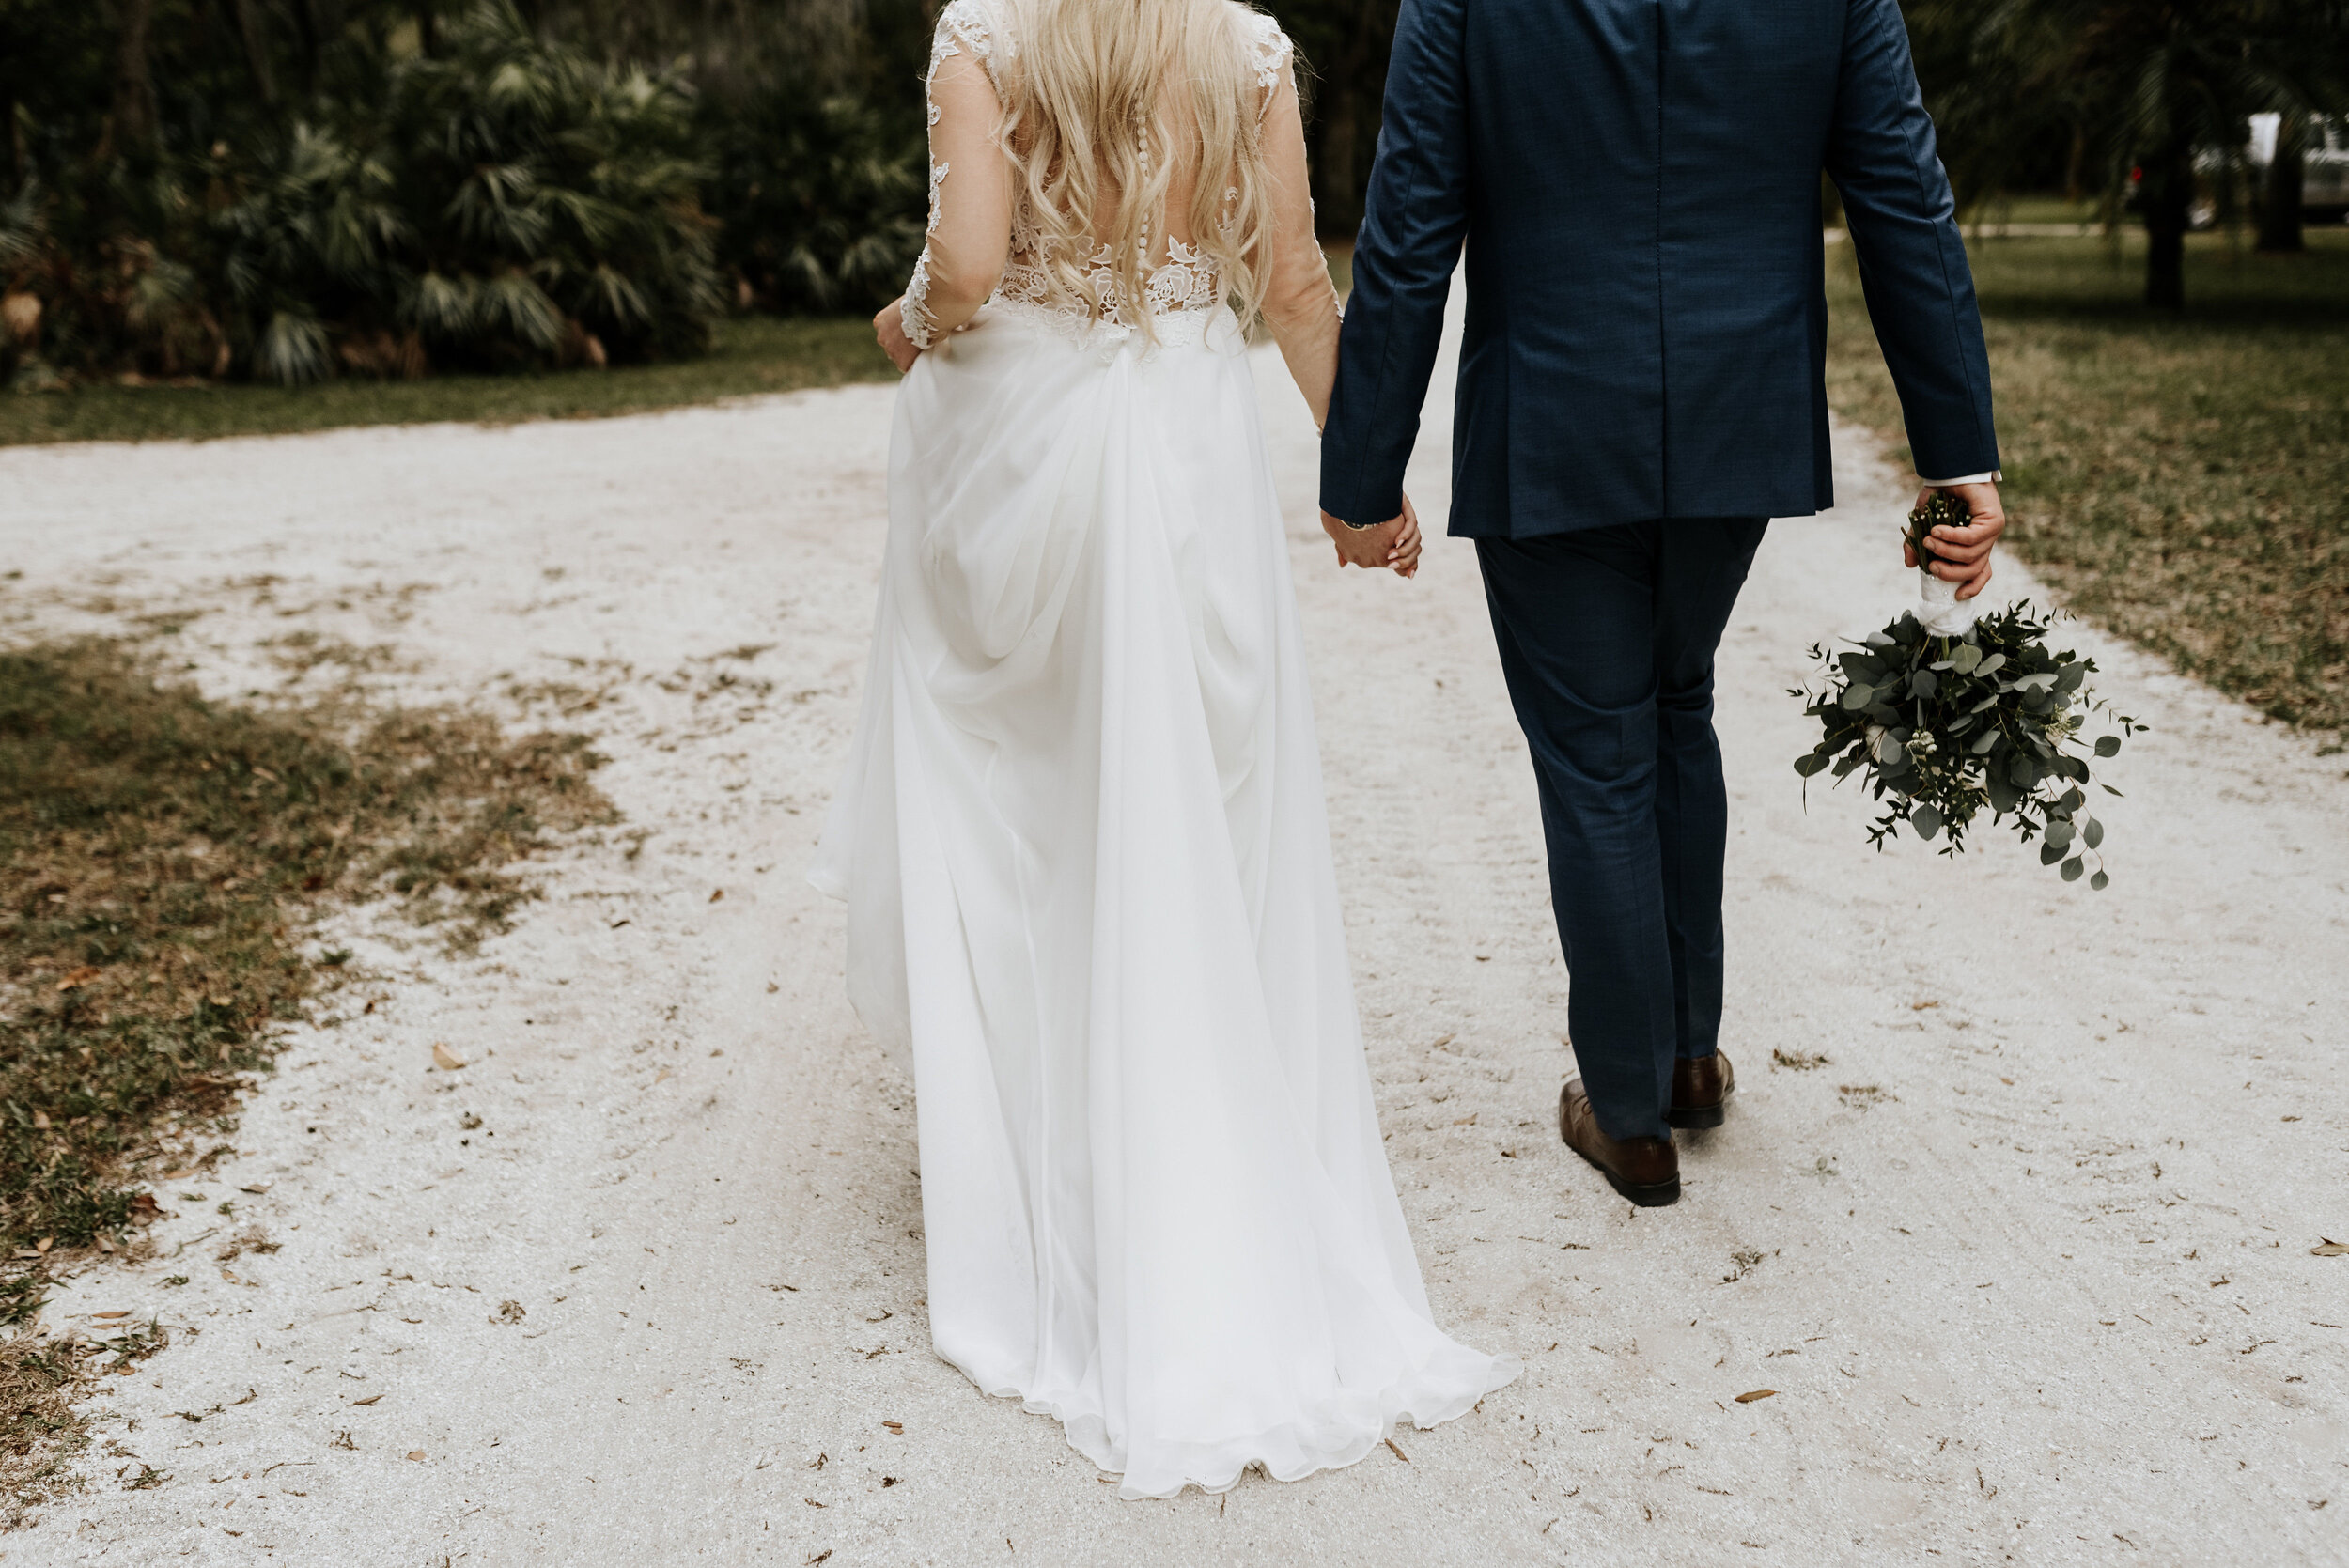 Mikenzi_Brad_Wedding_The_Delamater_House_New_Smyrna_Beach_Florida_Photography_by_V_0888.jpg